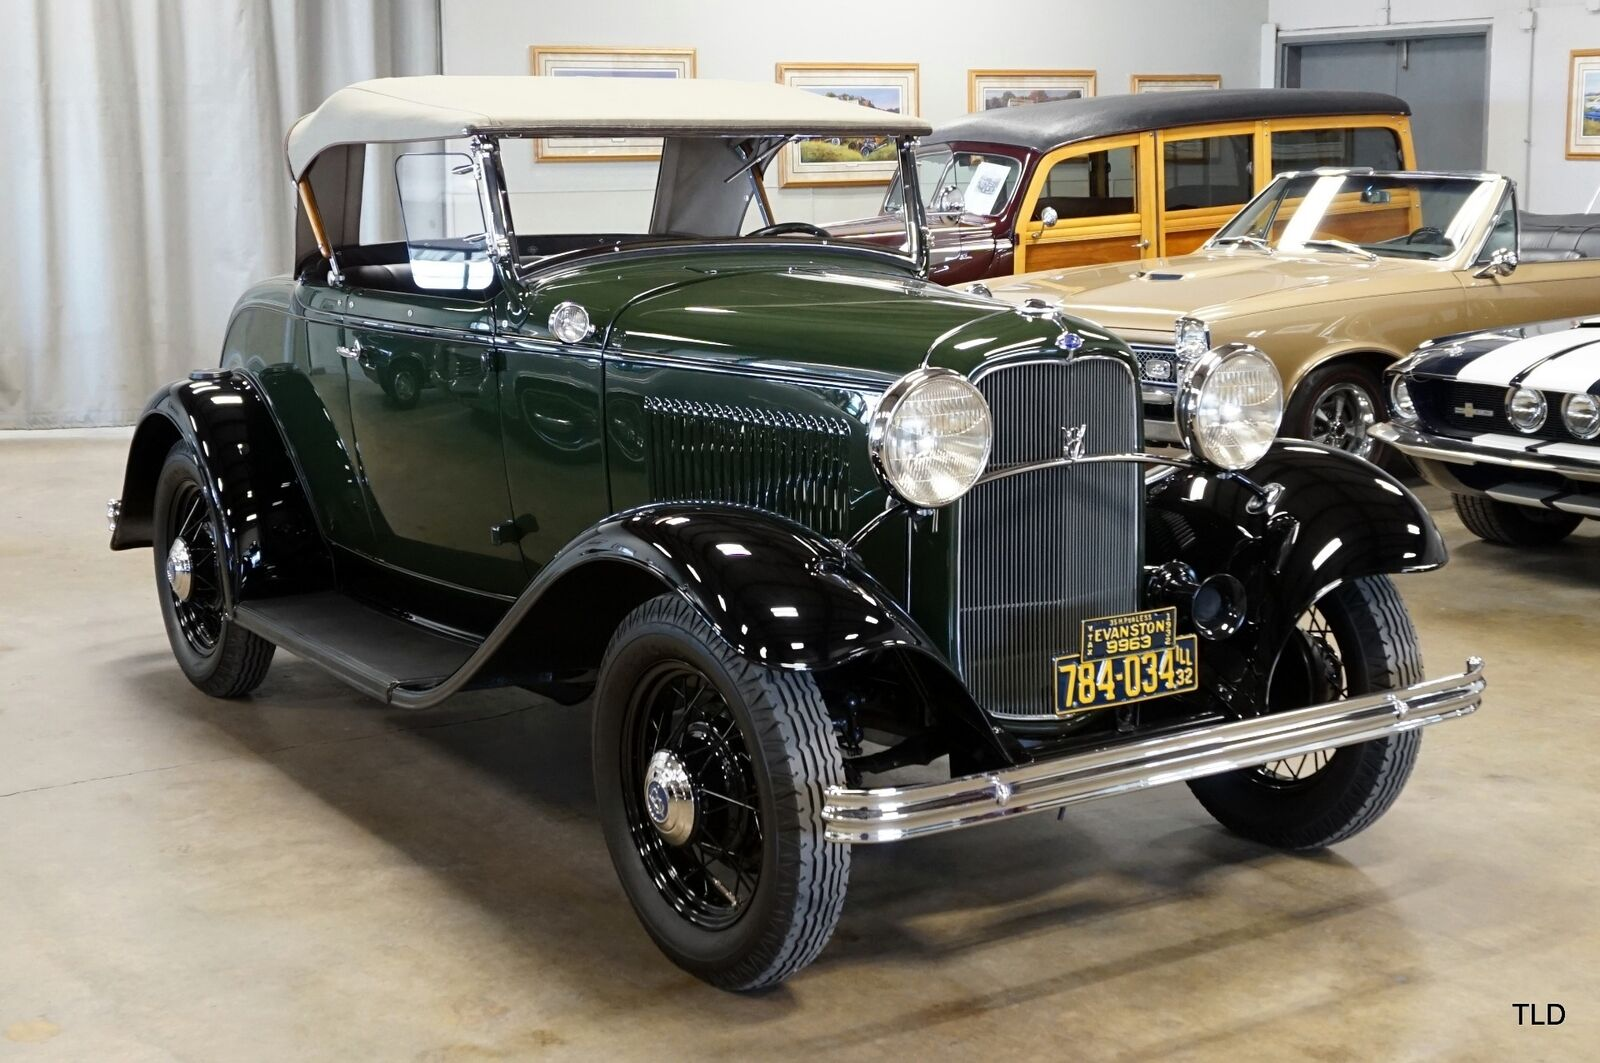 used Ford Deluxe 1932 vin: 1829498